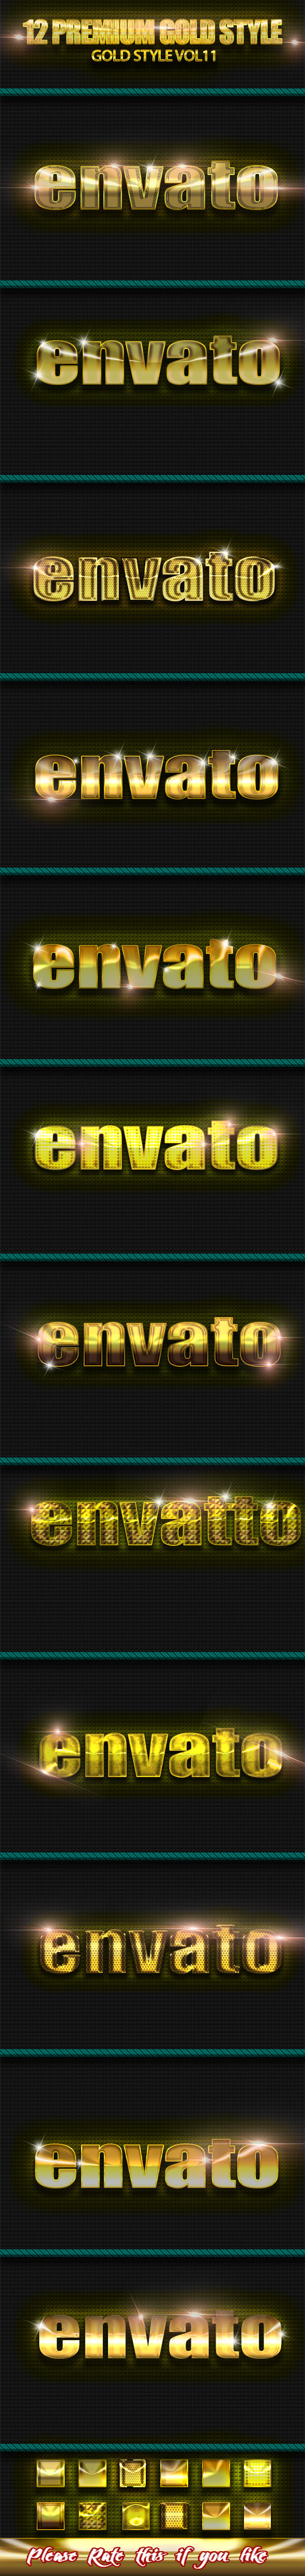 12 Photoshop GOLD Text Effect Styles Vol 11 - Text Effects Styles